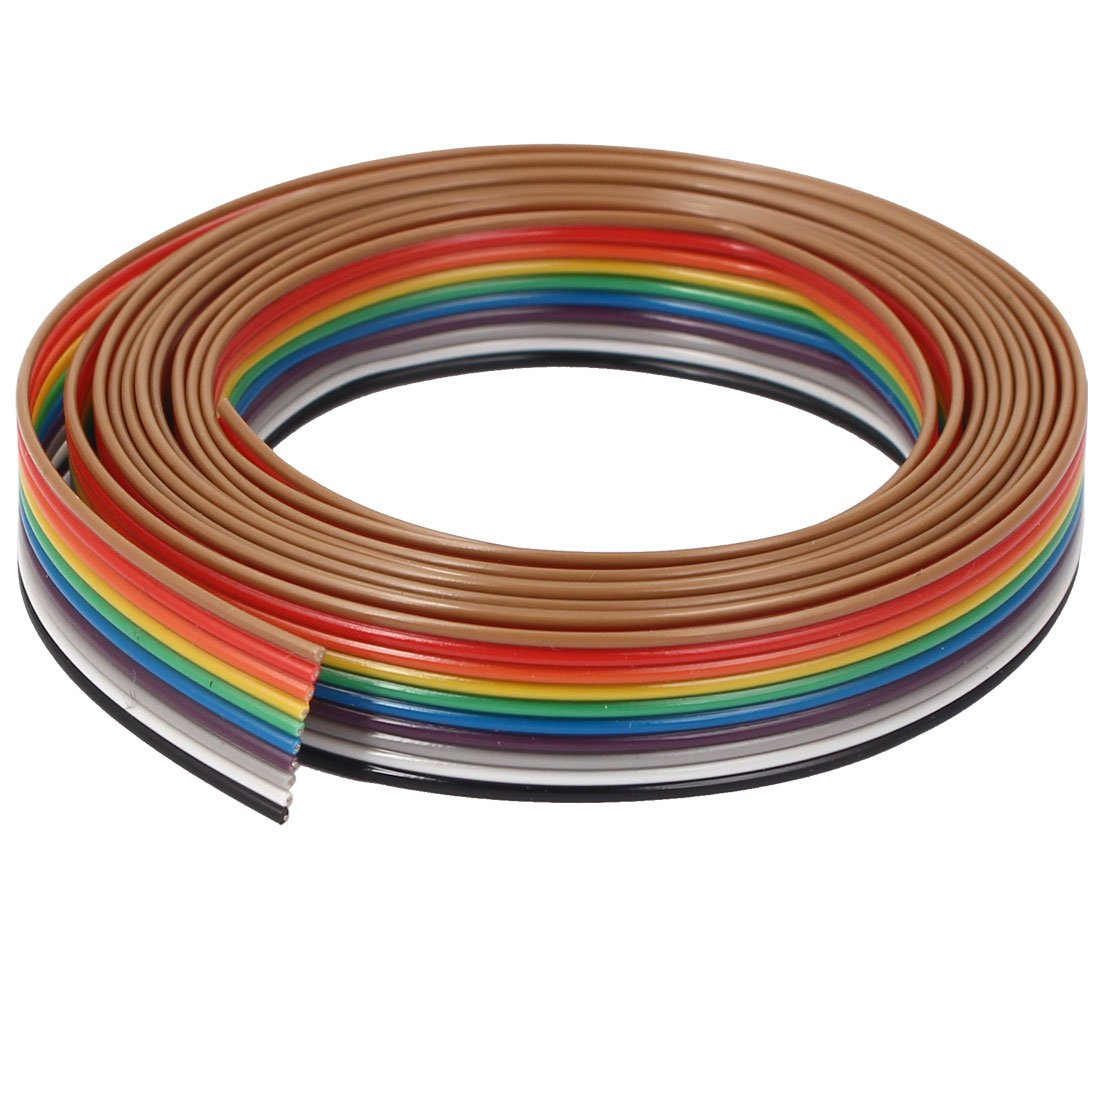 6.2 1.9 m Uxcell Flat Ribbon IDC Cable Wire Rainbow Cable 10 Way 10 Pin